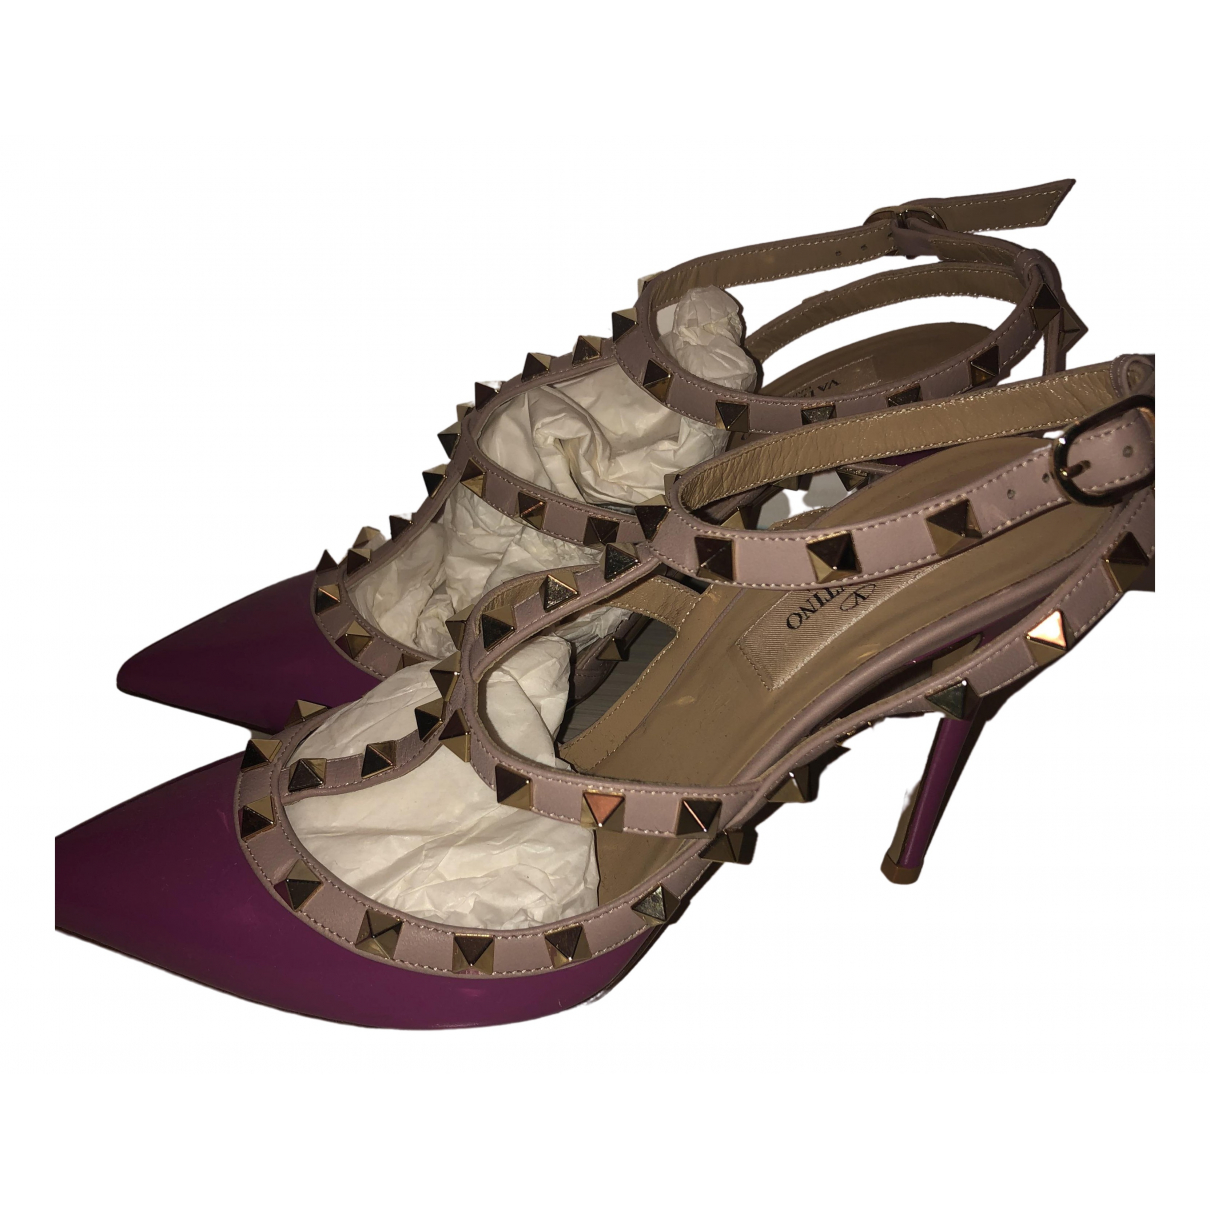 Valentino Garavani Rockstud Purple Leather Heels for Women 38 EU